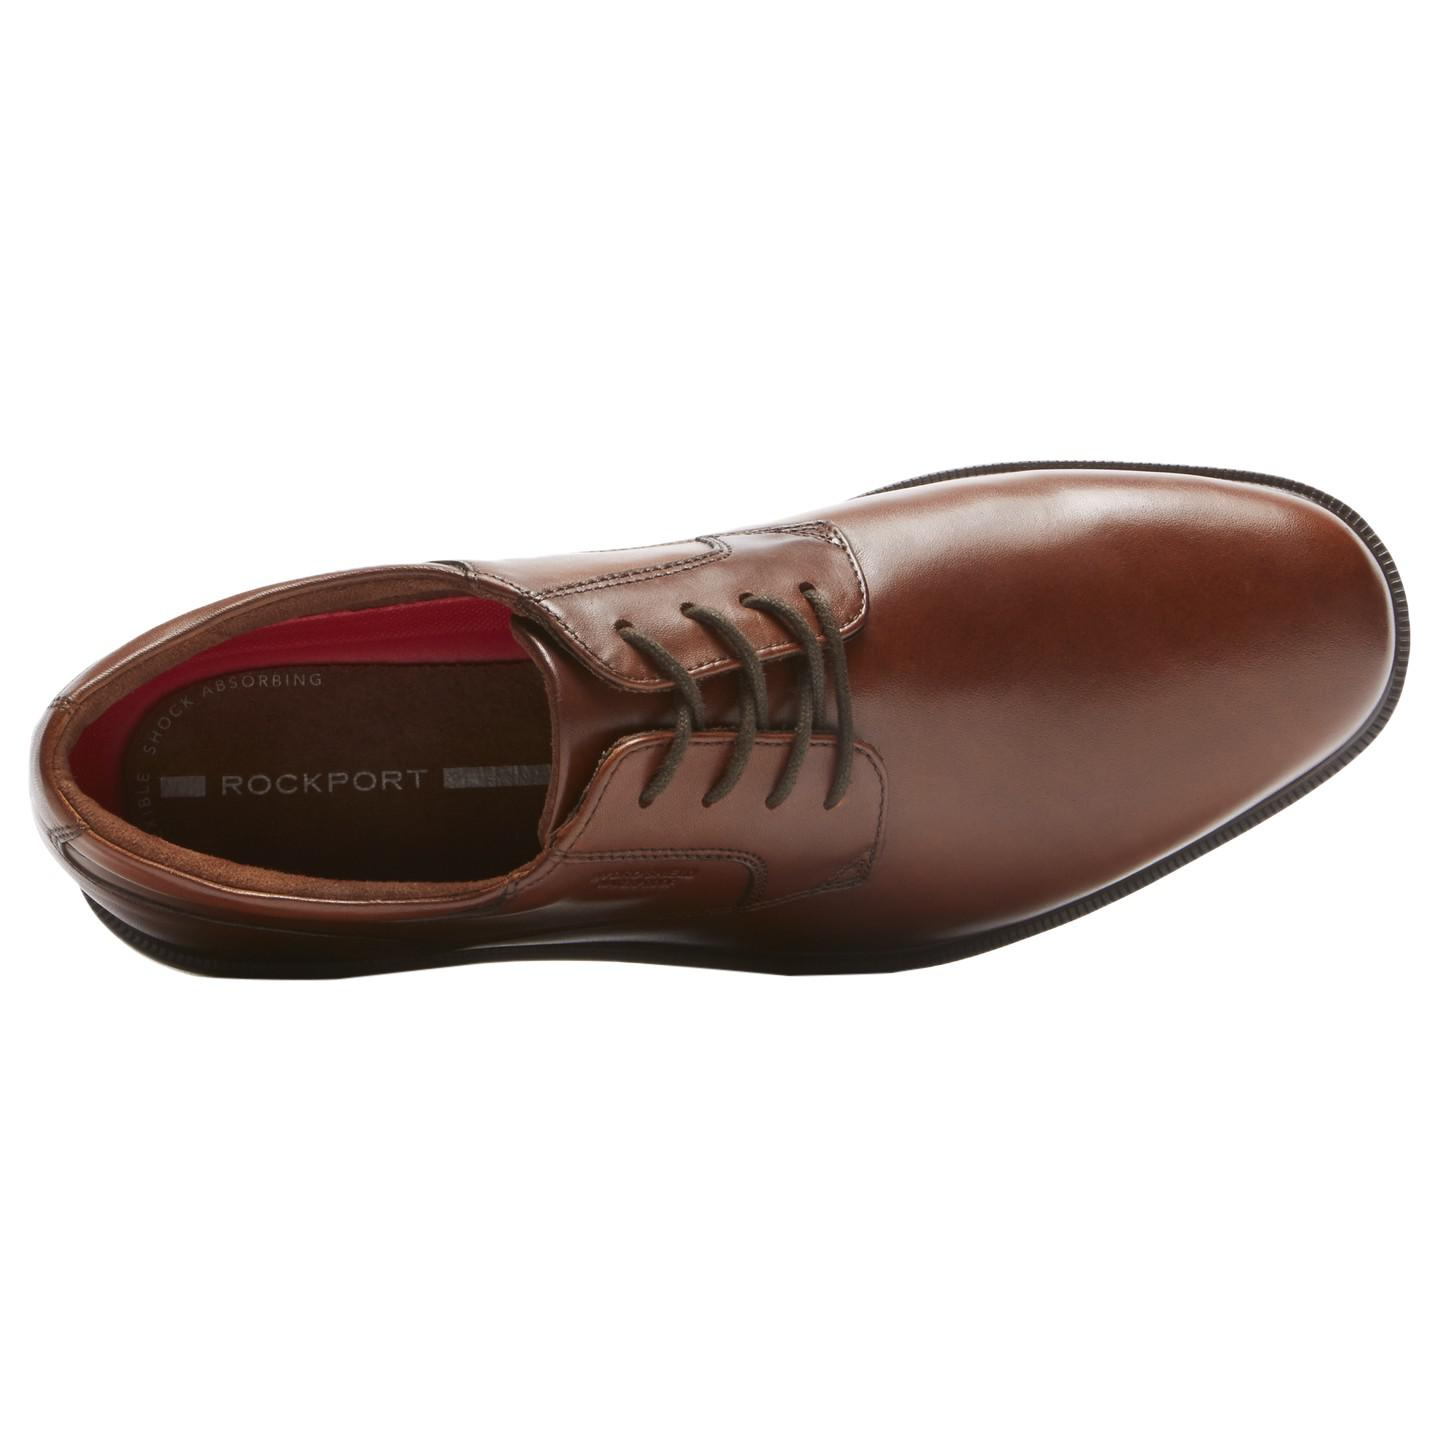 Rockport Essential Details Plaintoe Leather Derby Shoes in Tan (Brown) for Men